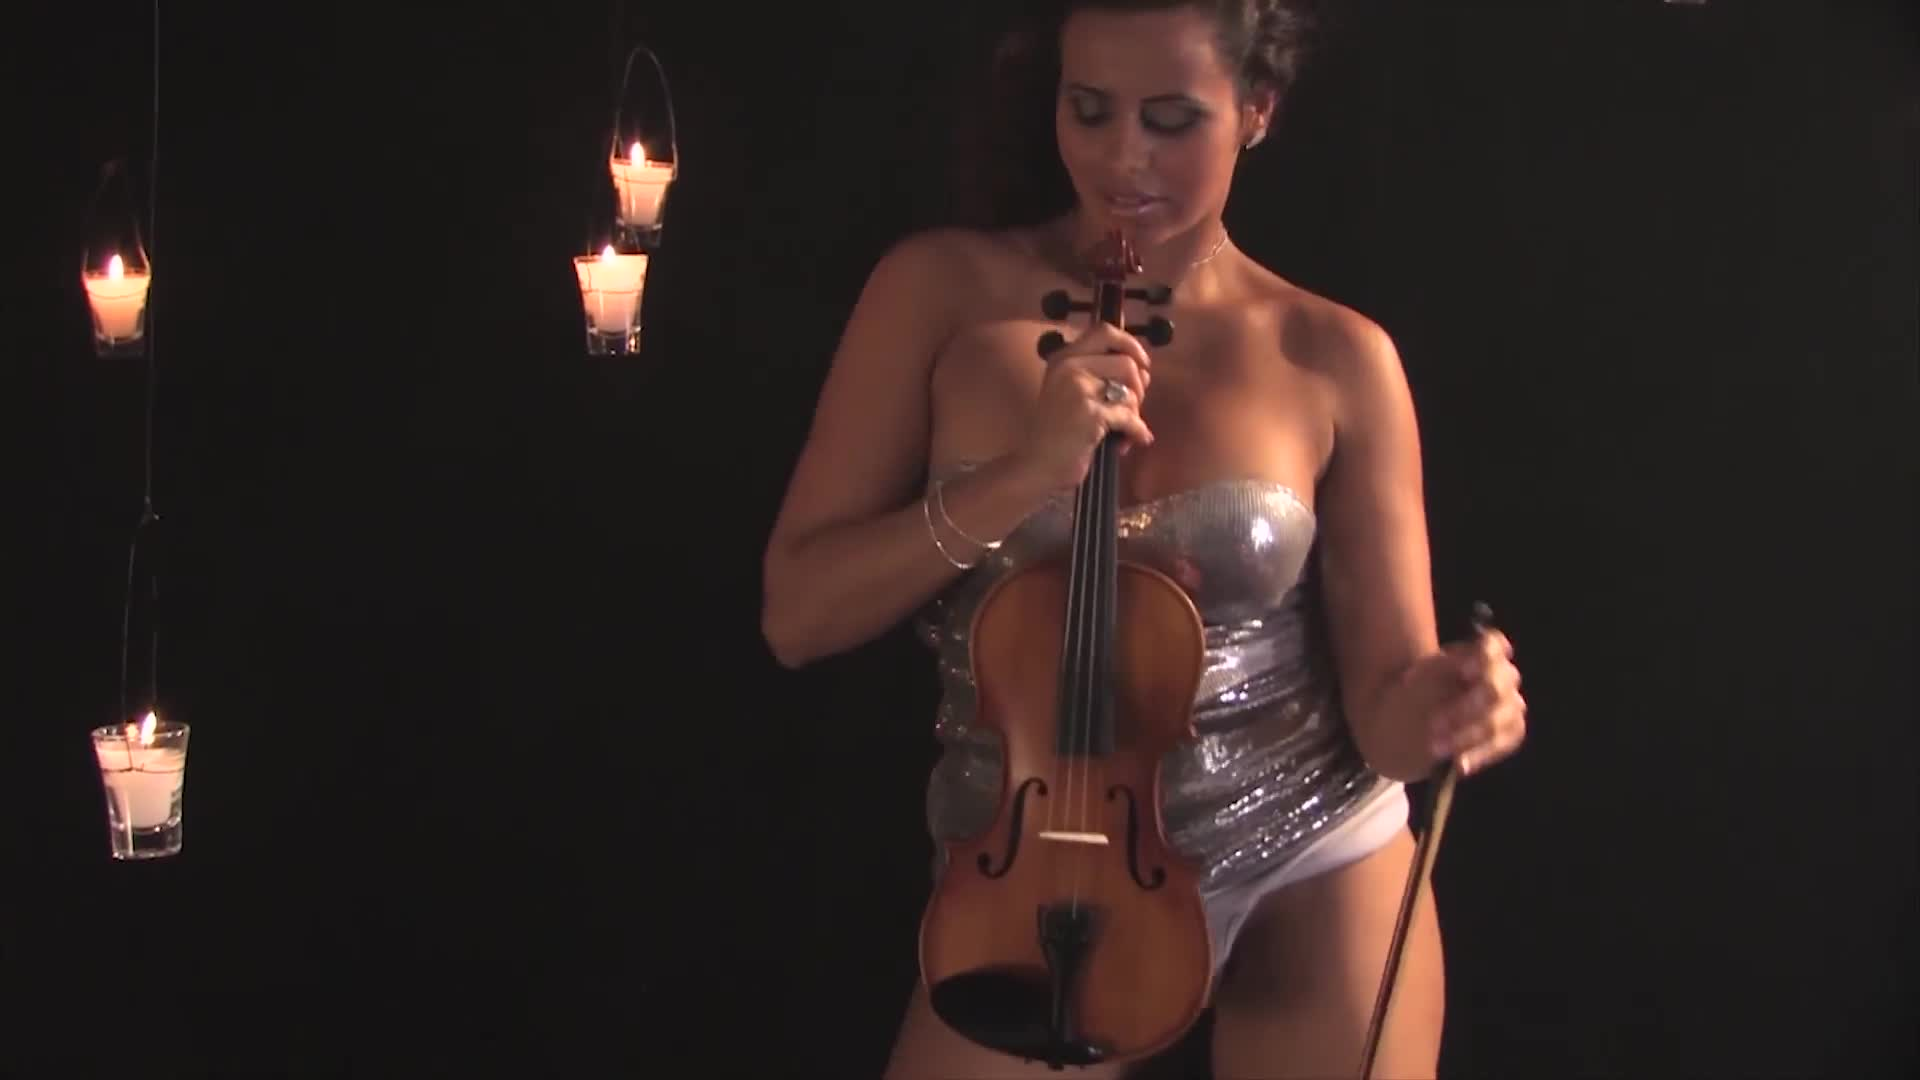 Violin - Cindy Lopes